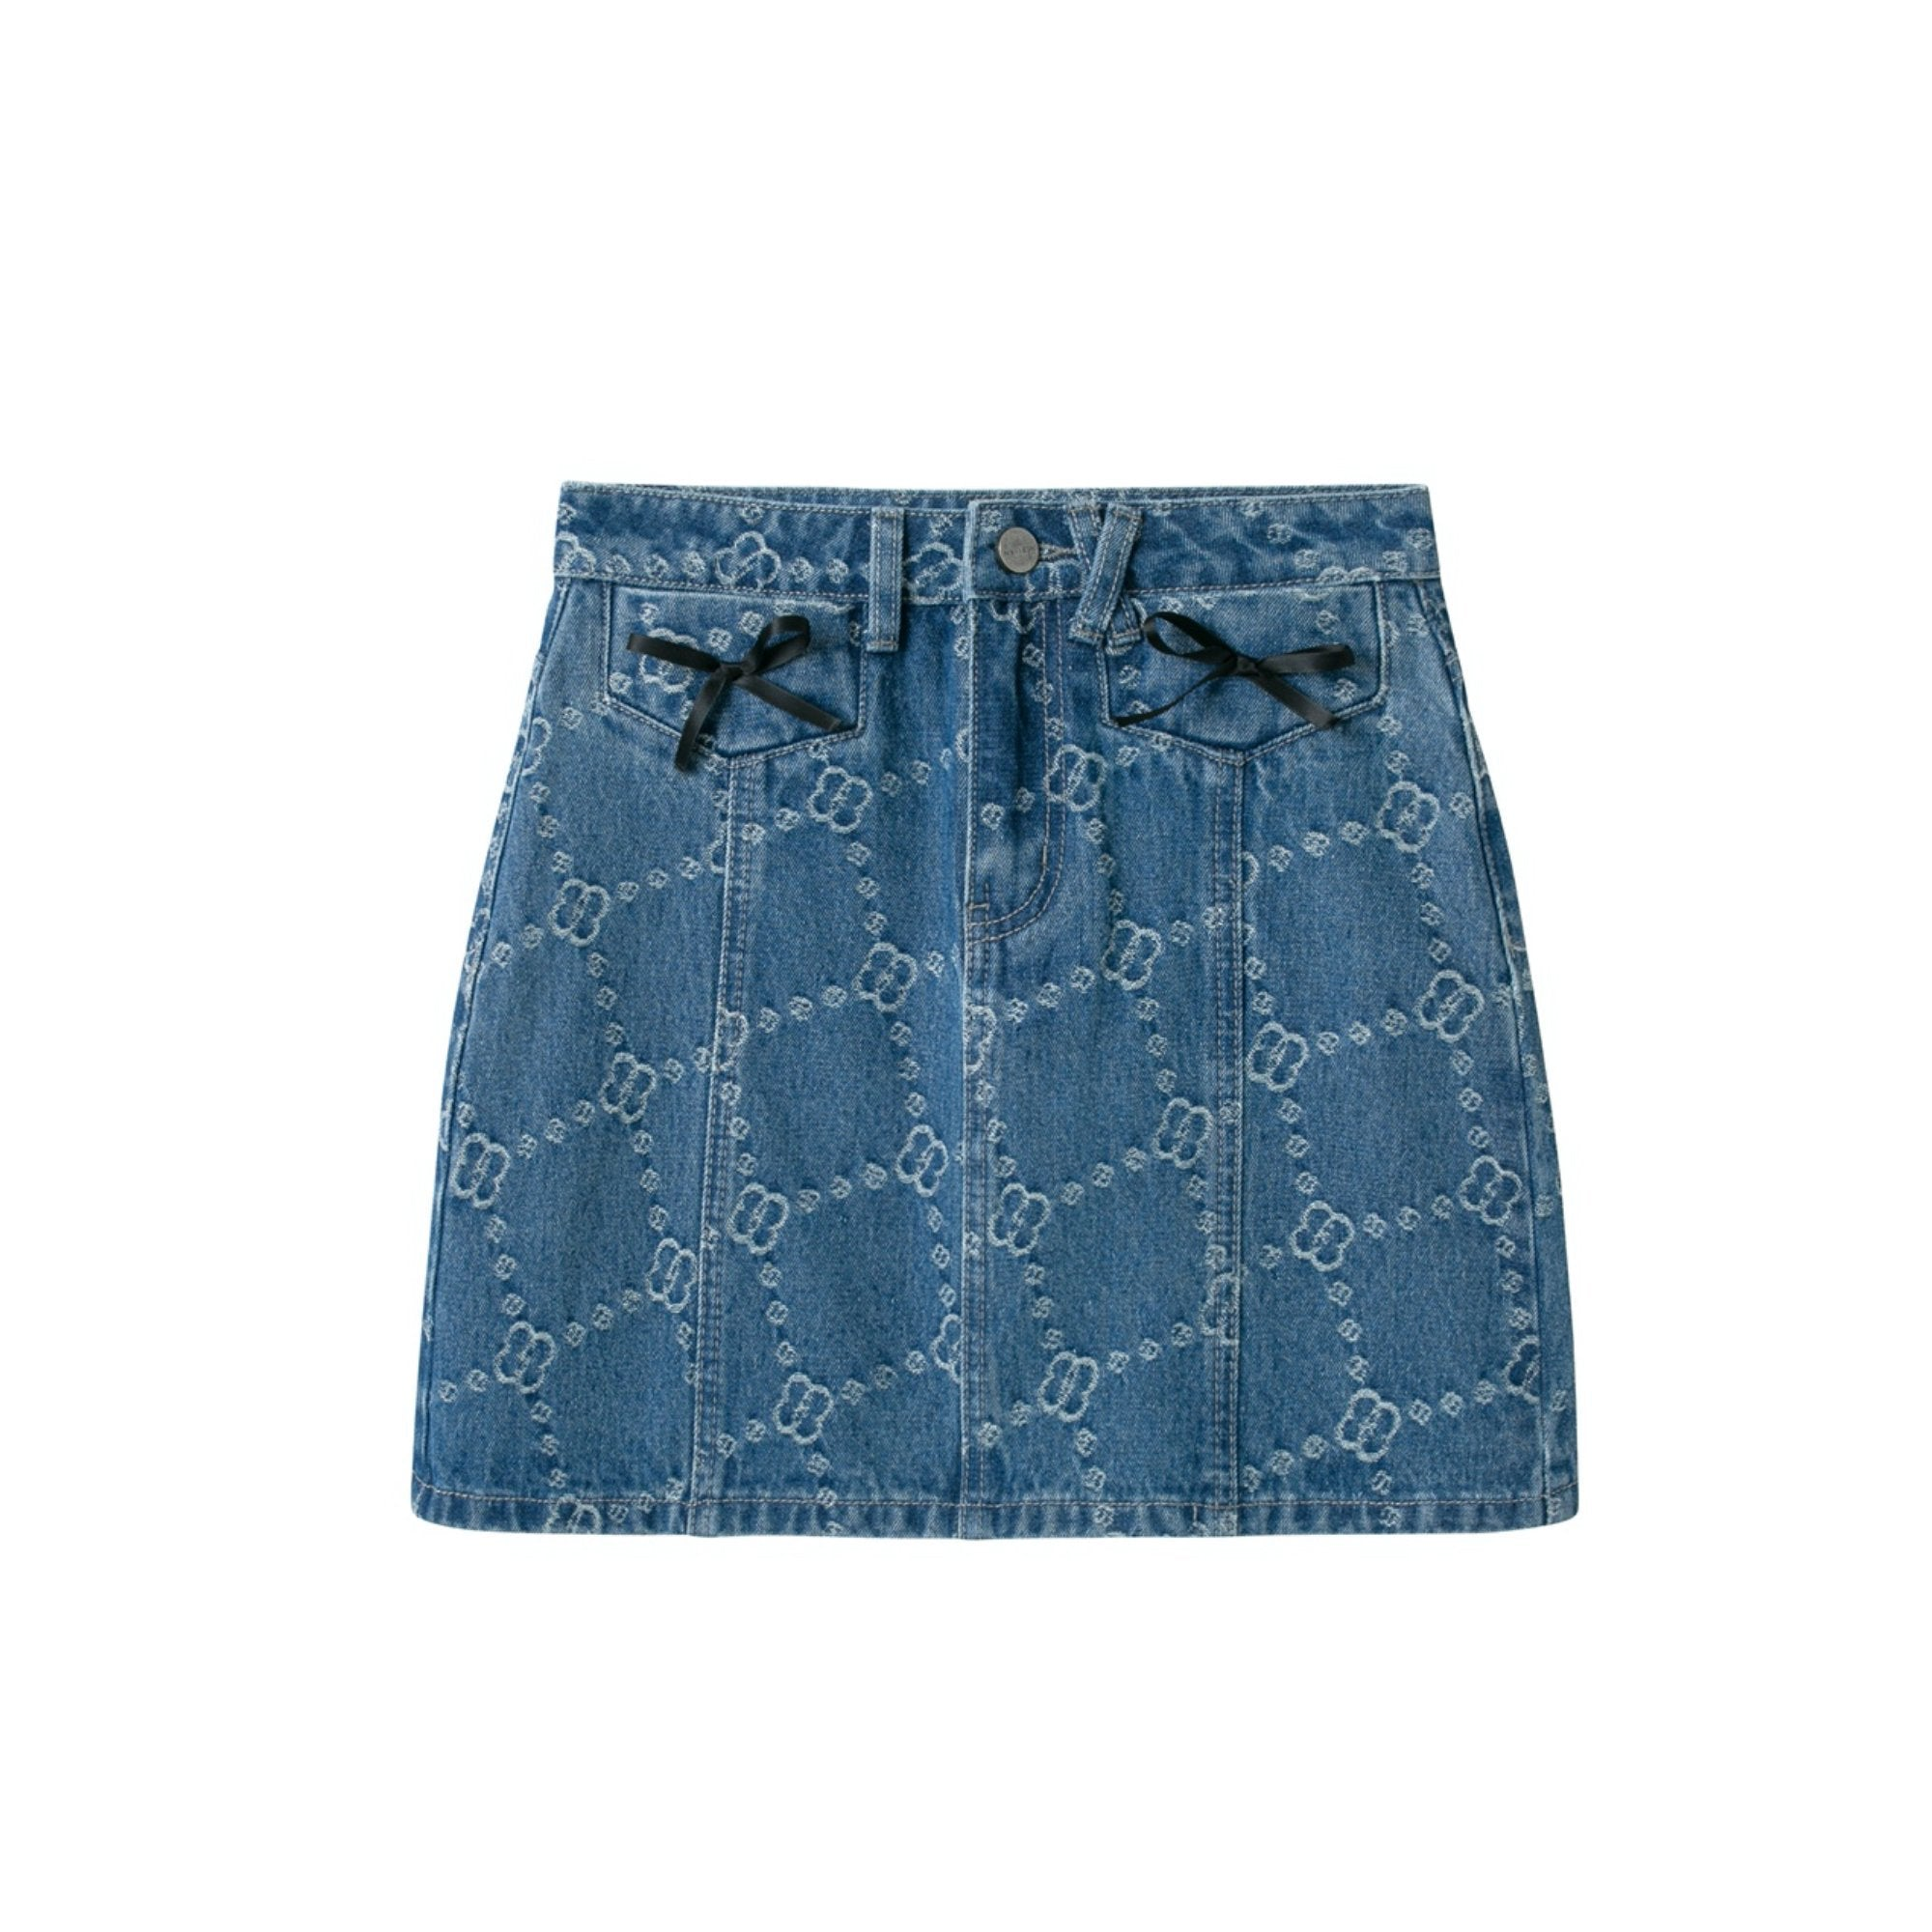 HERLIAN 'Dans La Fleur' Allover Logo Denim Skirts | MADA IN CHINA